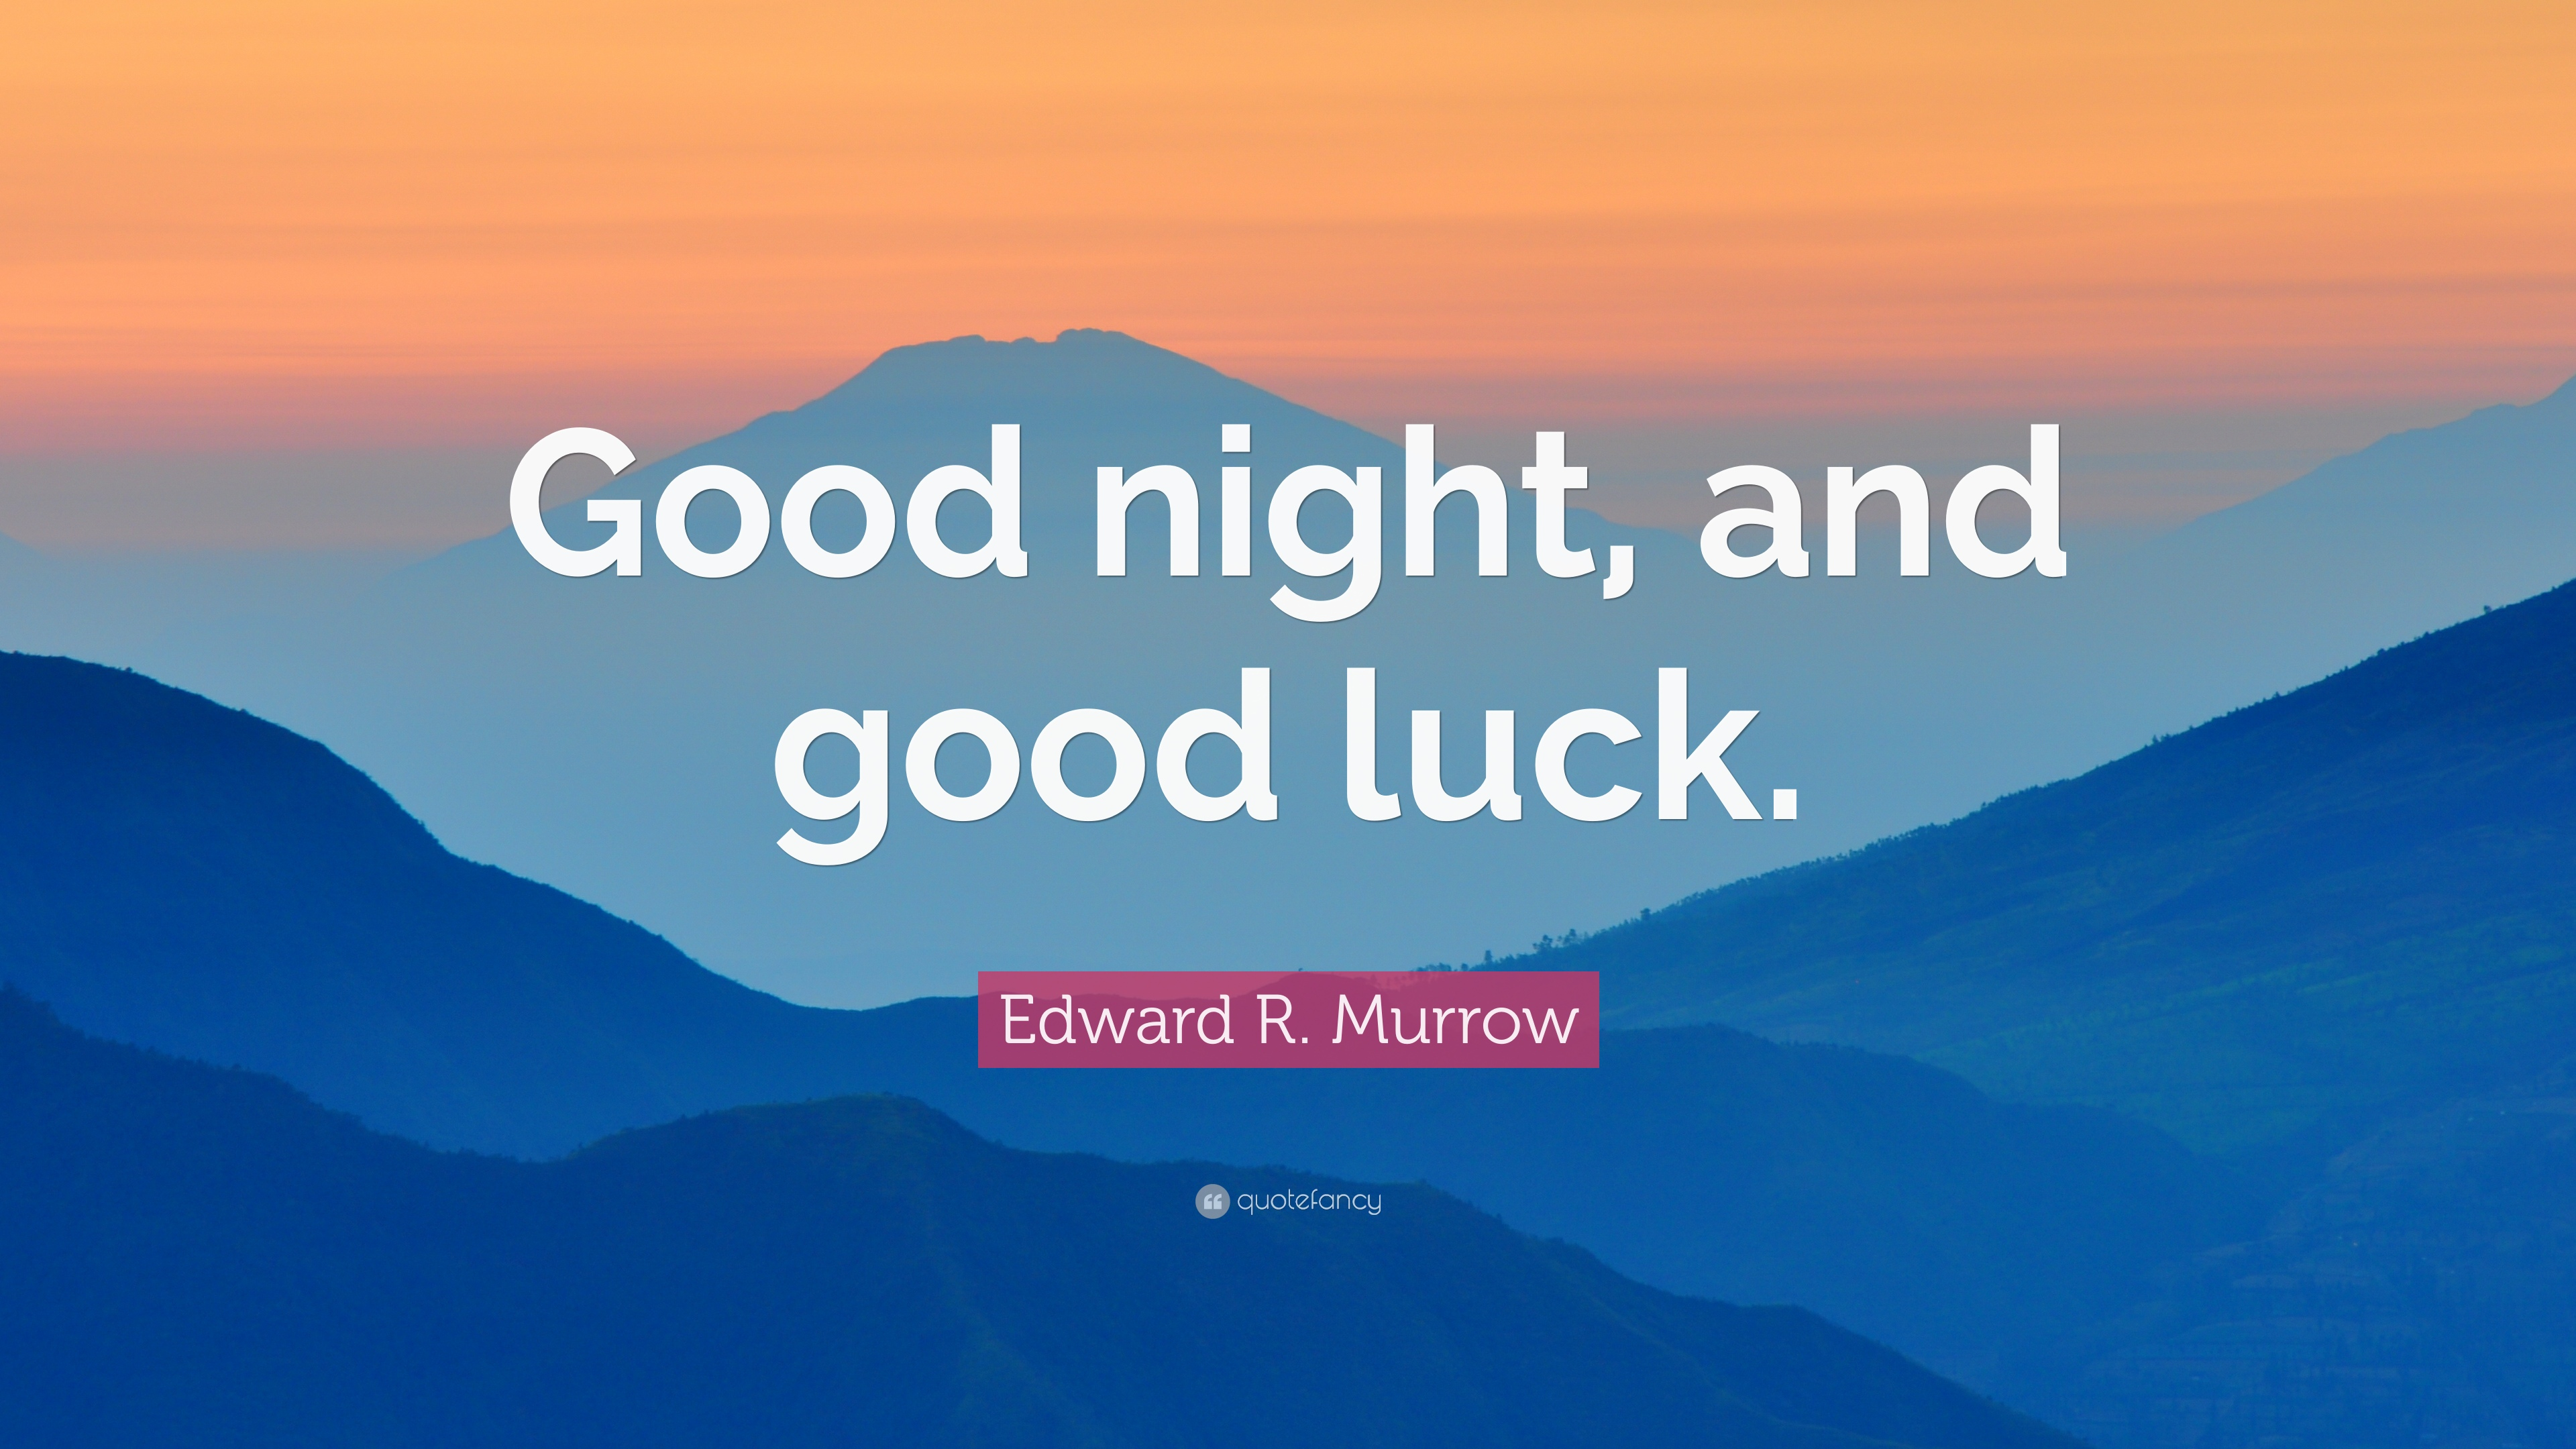 edward r murrow quote good night and good luck